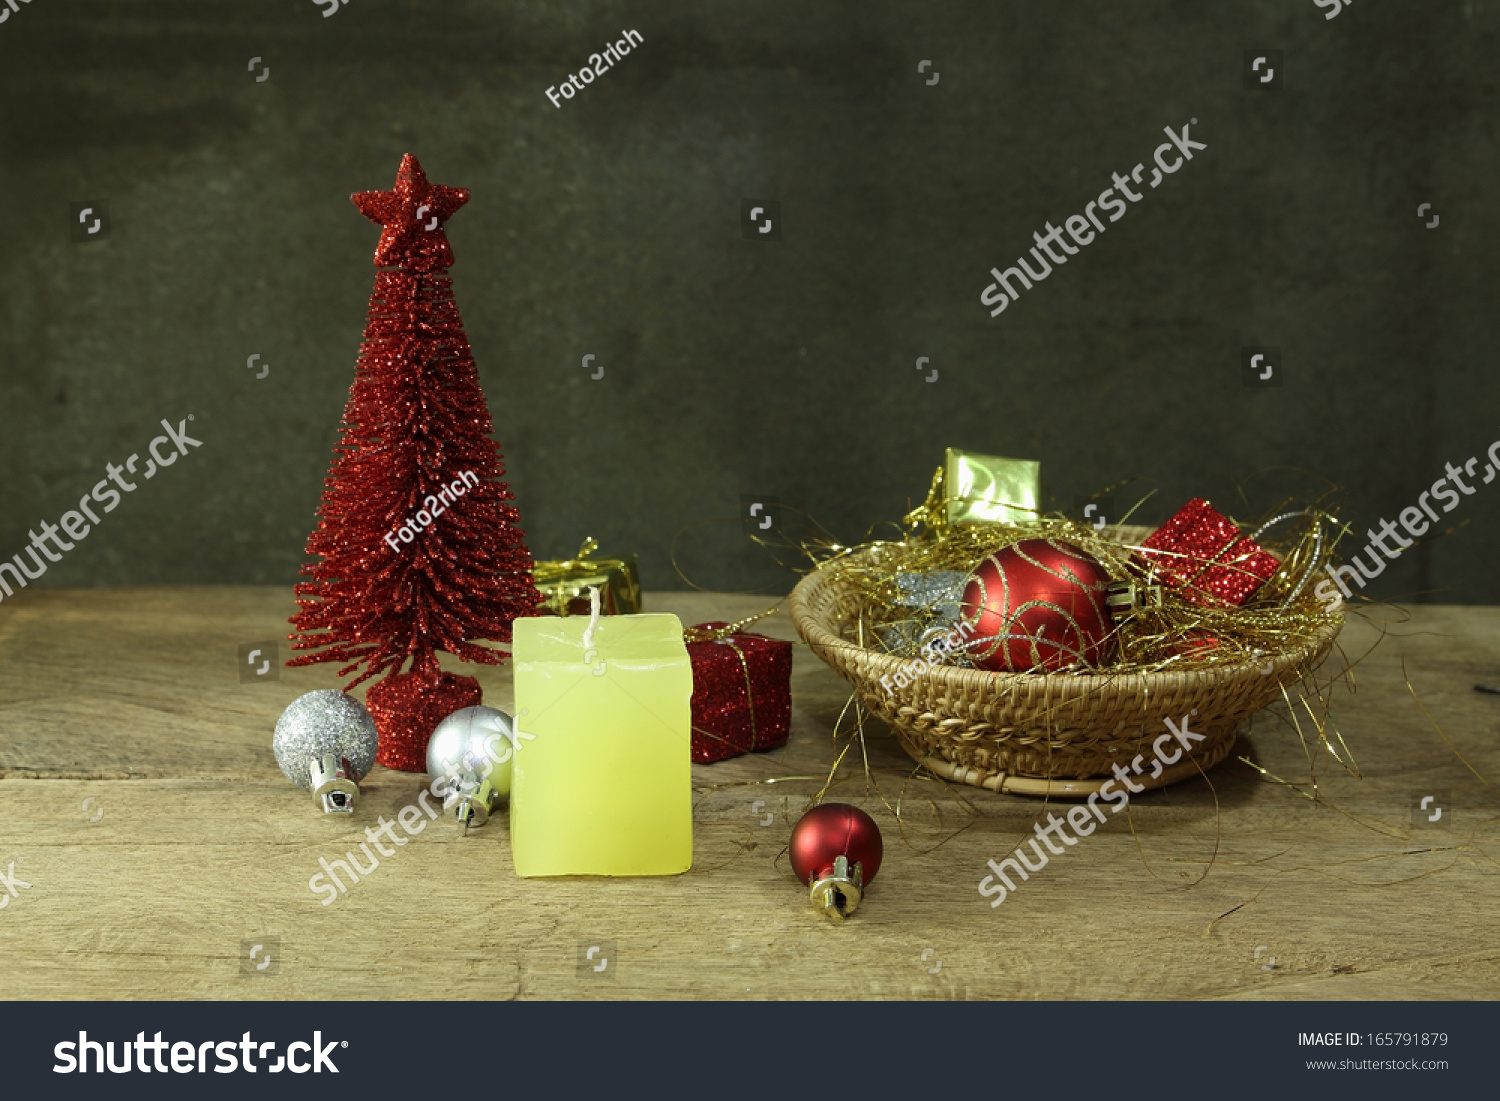 Still Life With Red Pine Tree And Christmas Ornaments